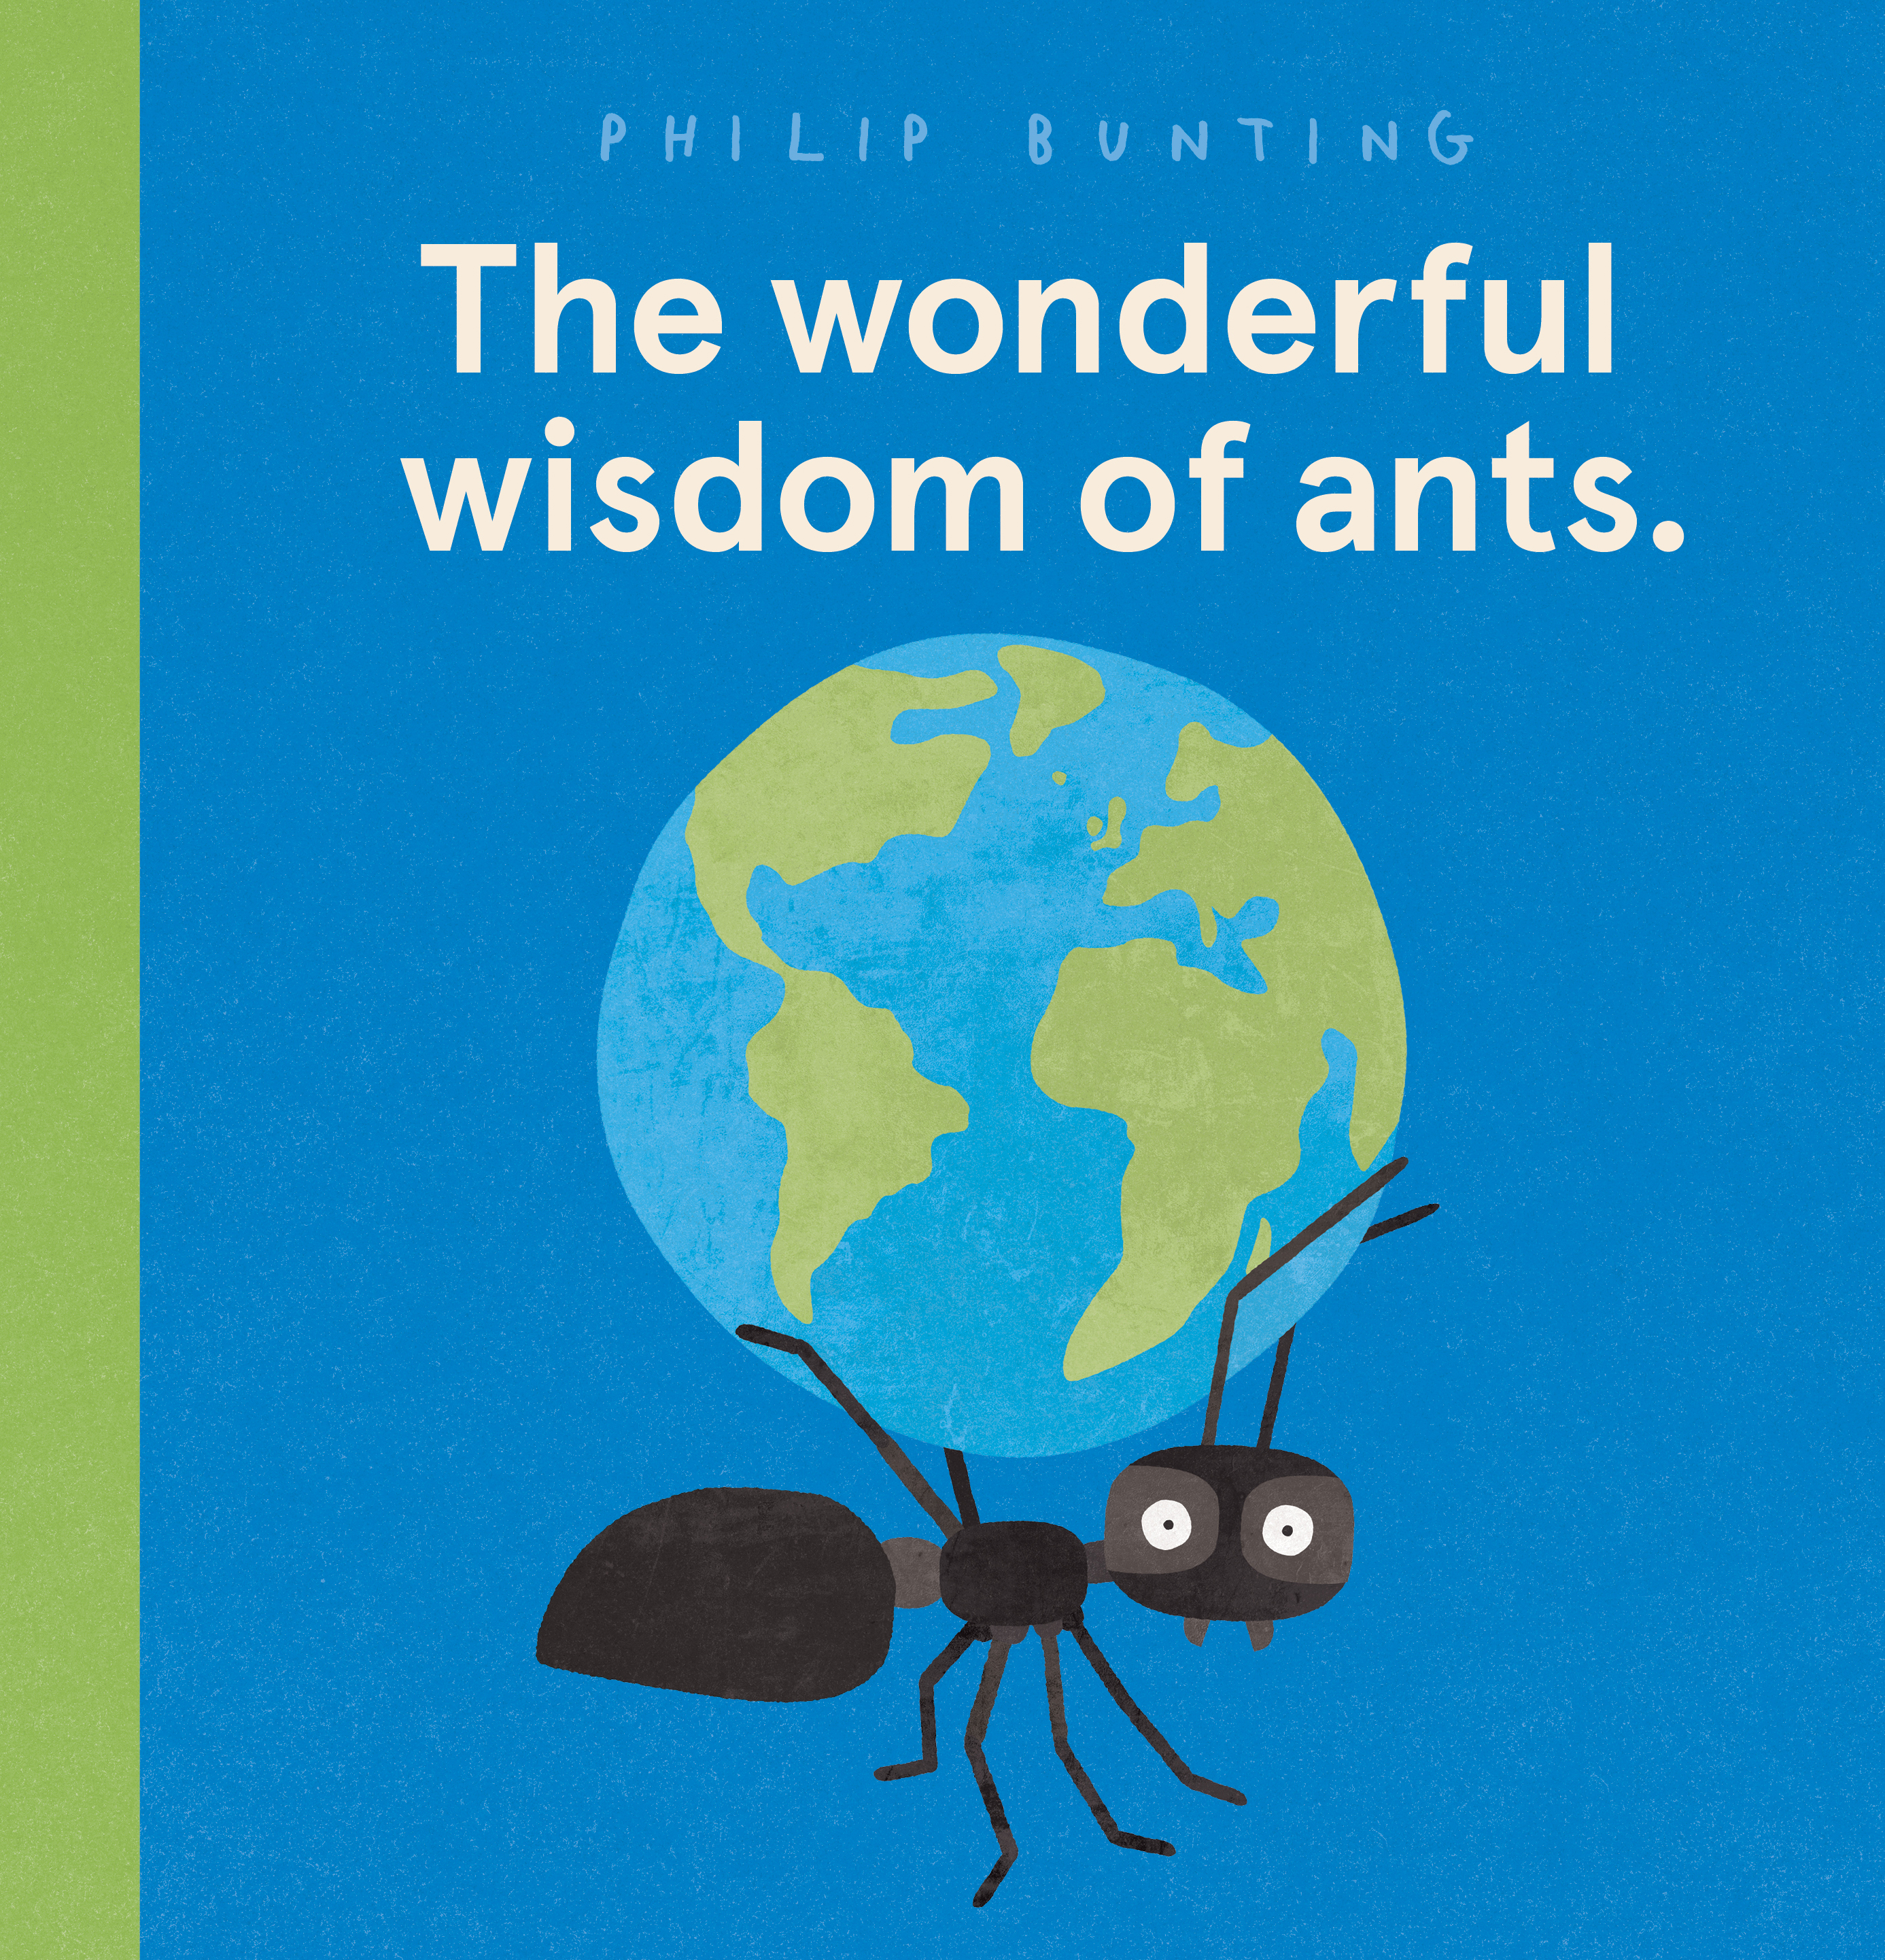 The Wonderful Wisdom of Ants by Philip Bunting